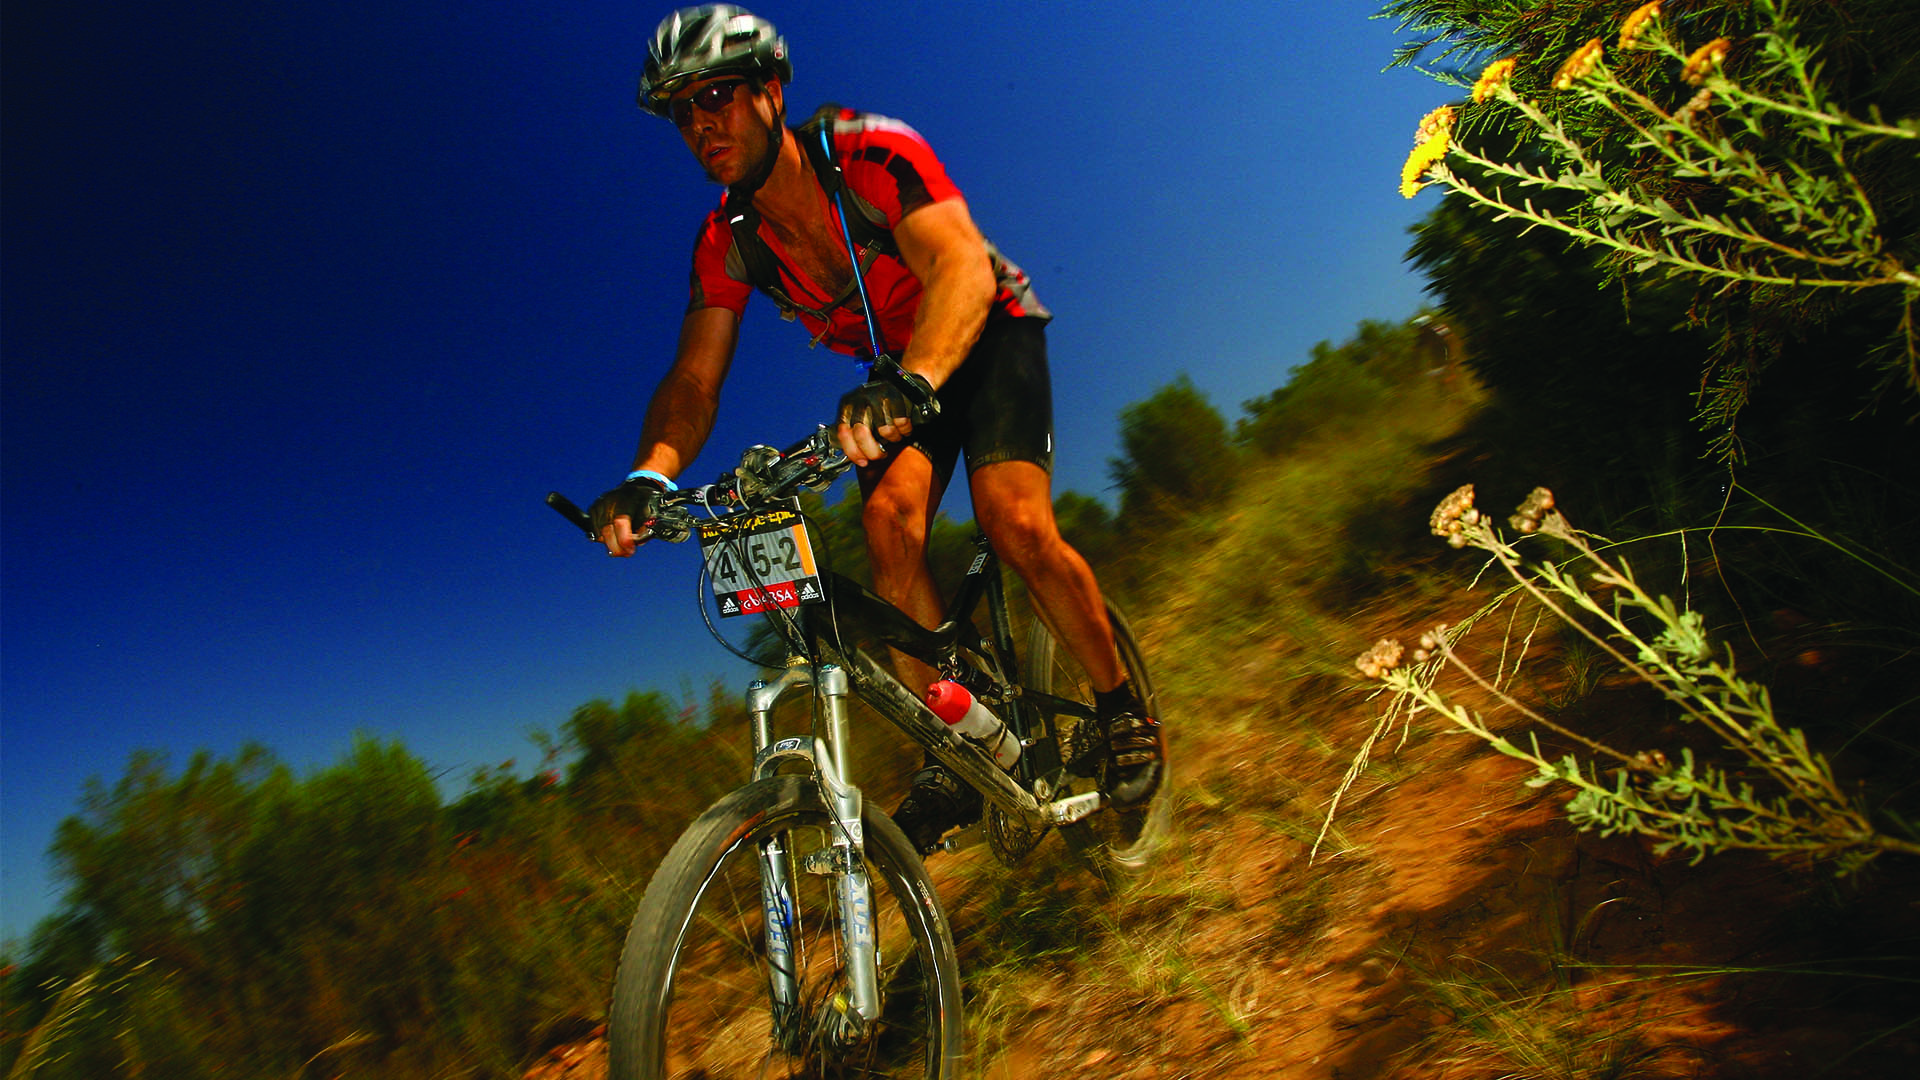 cape-epic-concentrating-downhill